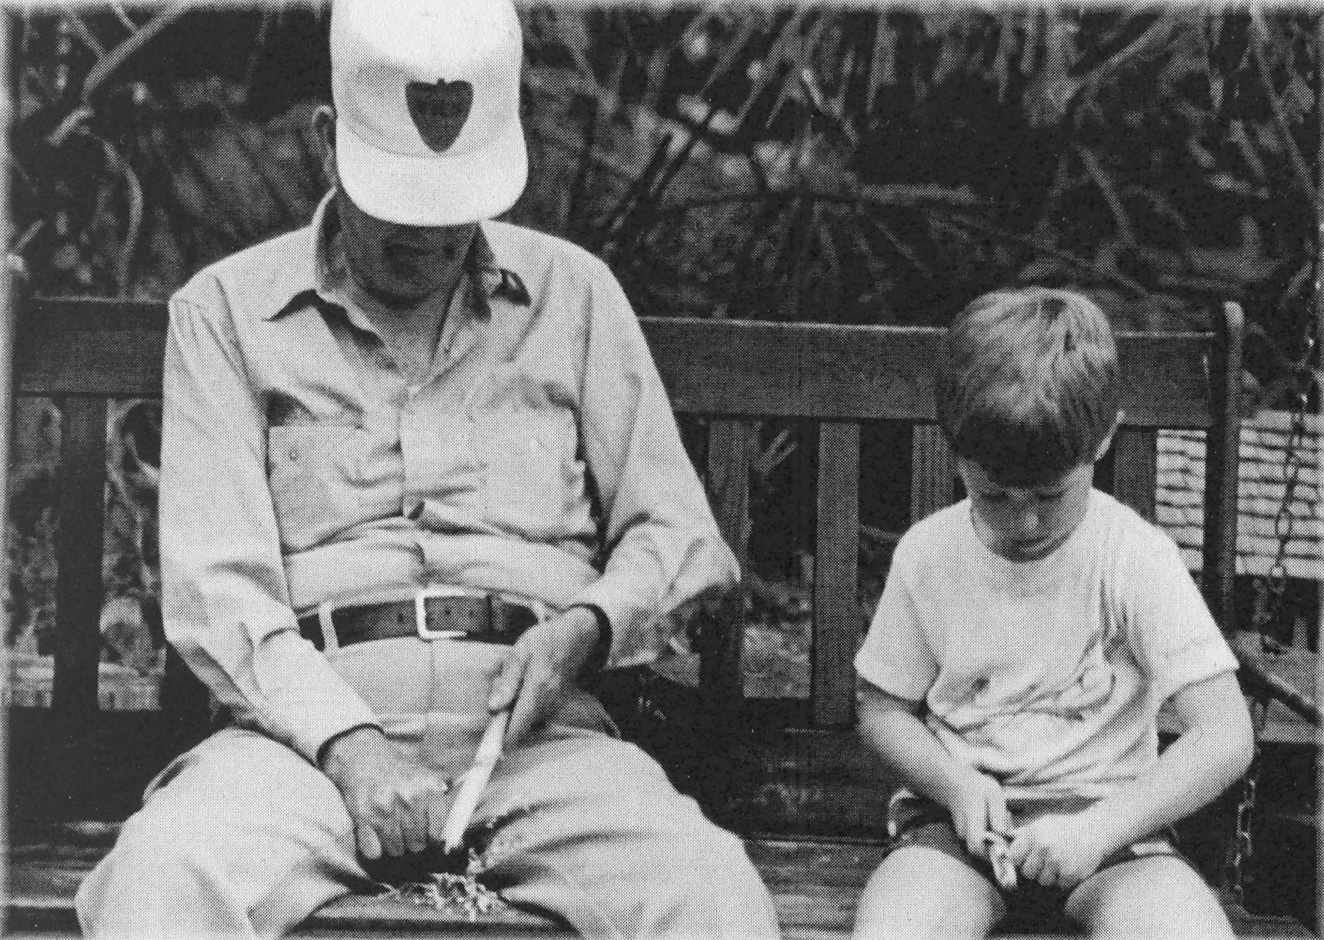 Grandfather and grandson whittling